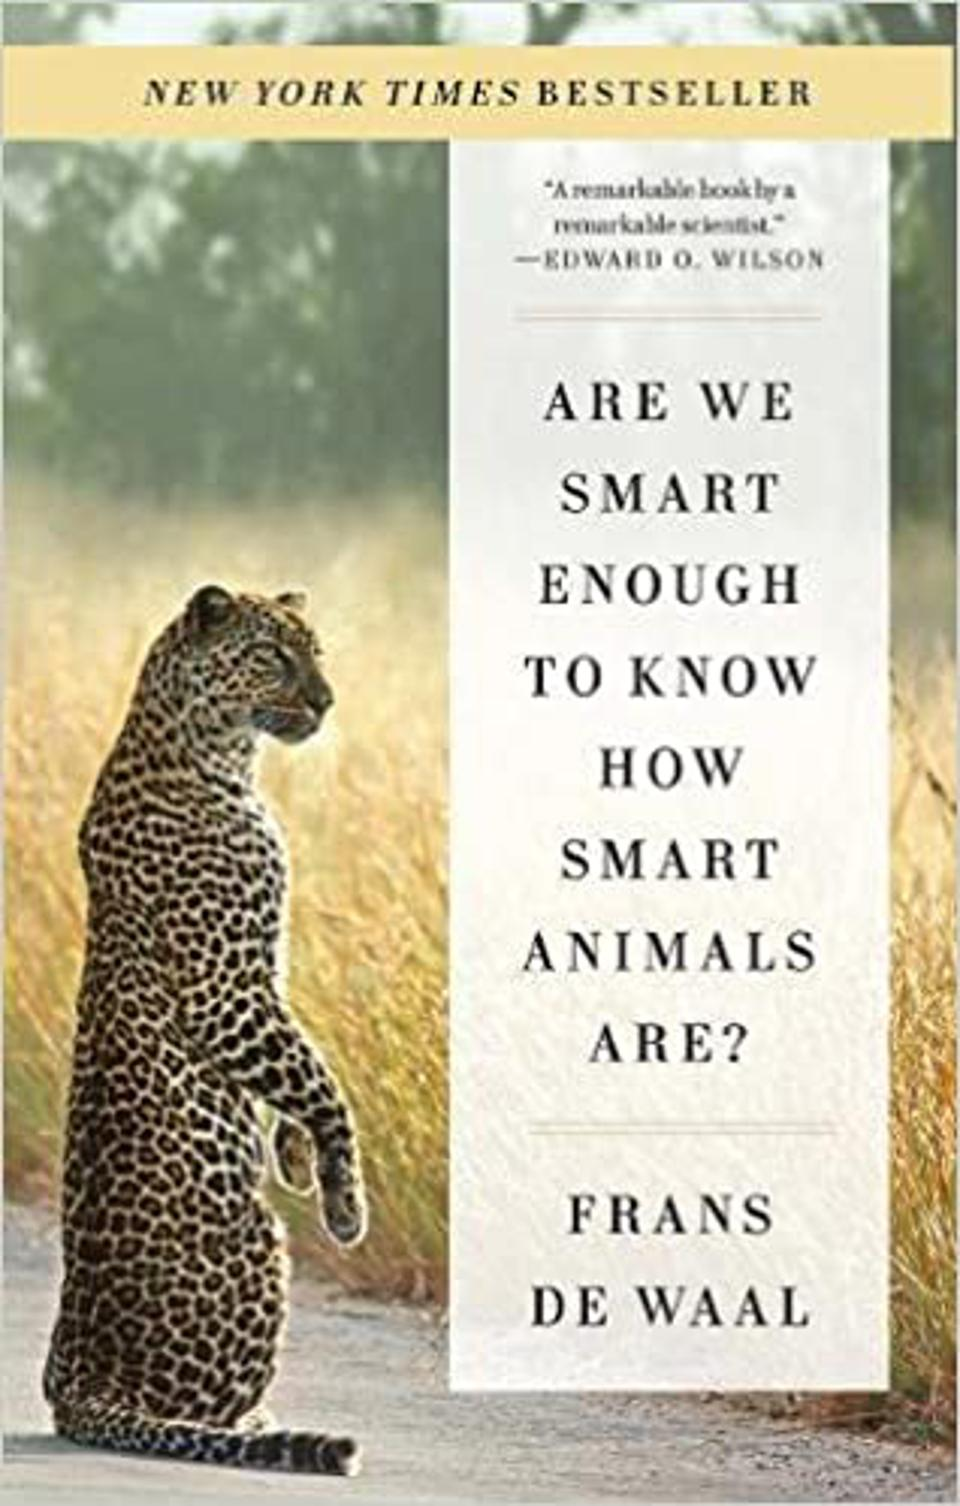 Frans de Waal's work has been published as New York Times bestsellers